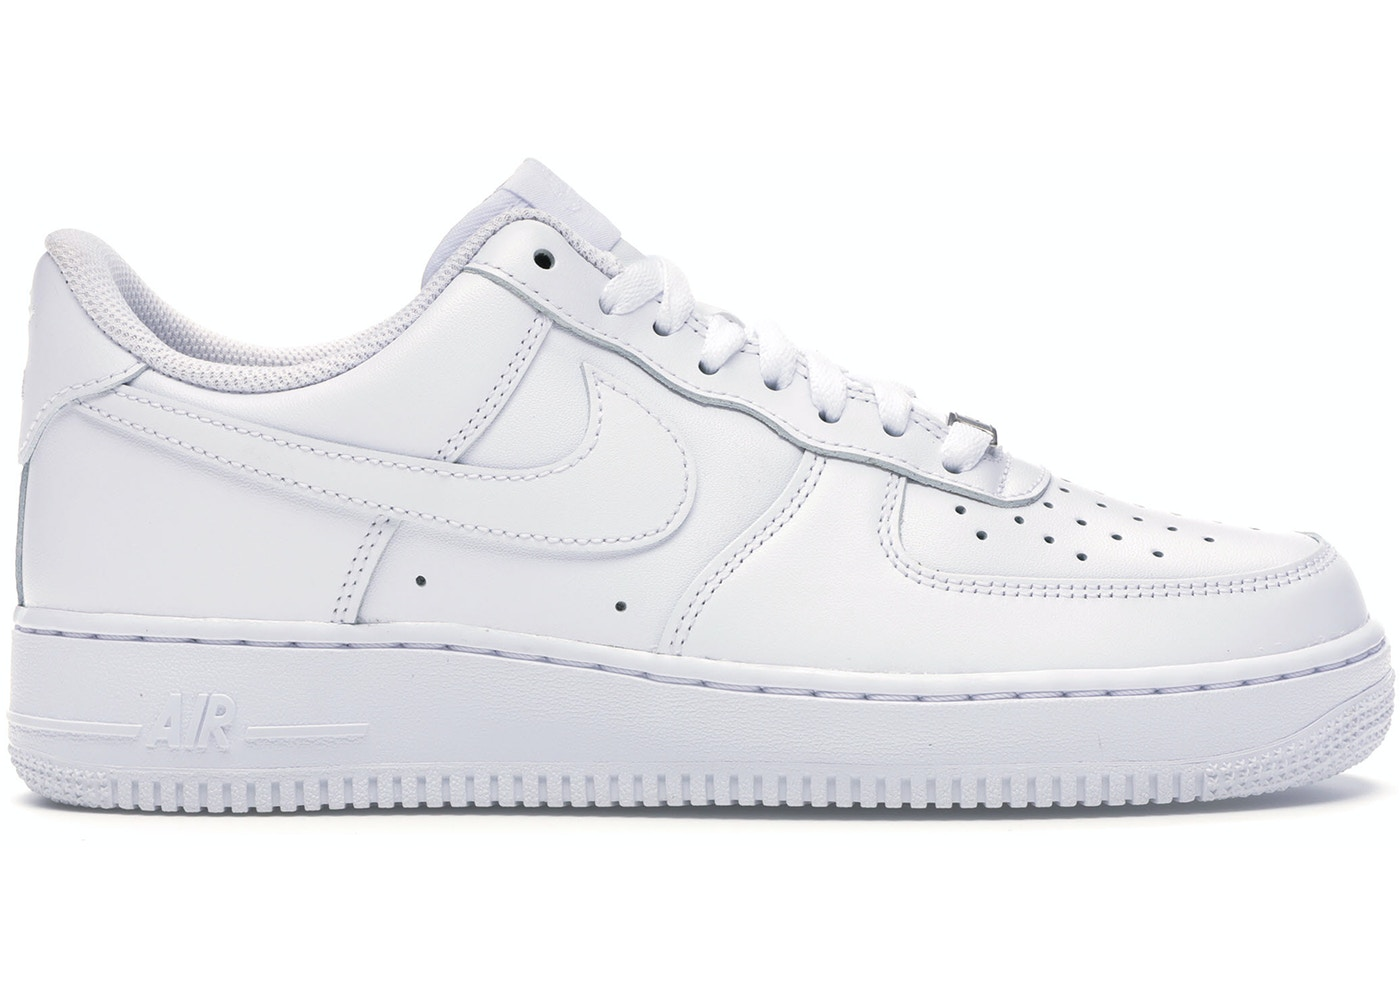 plus récent c4596 24f42 Buy Nike Air Force Shoes & Deadstock Sneakers